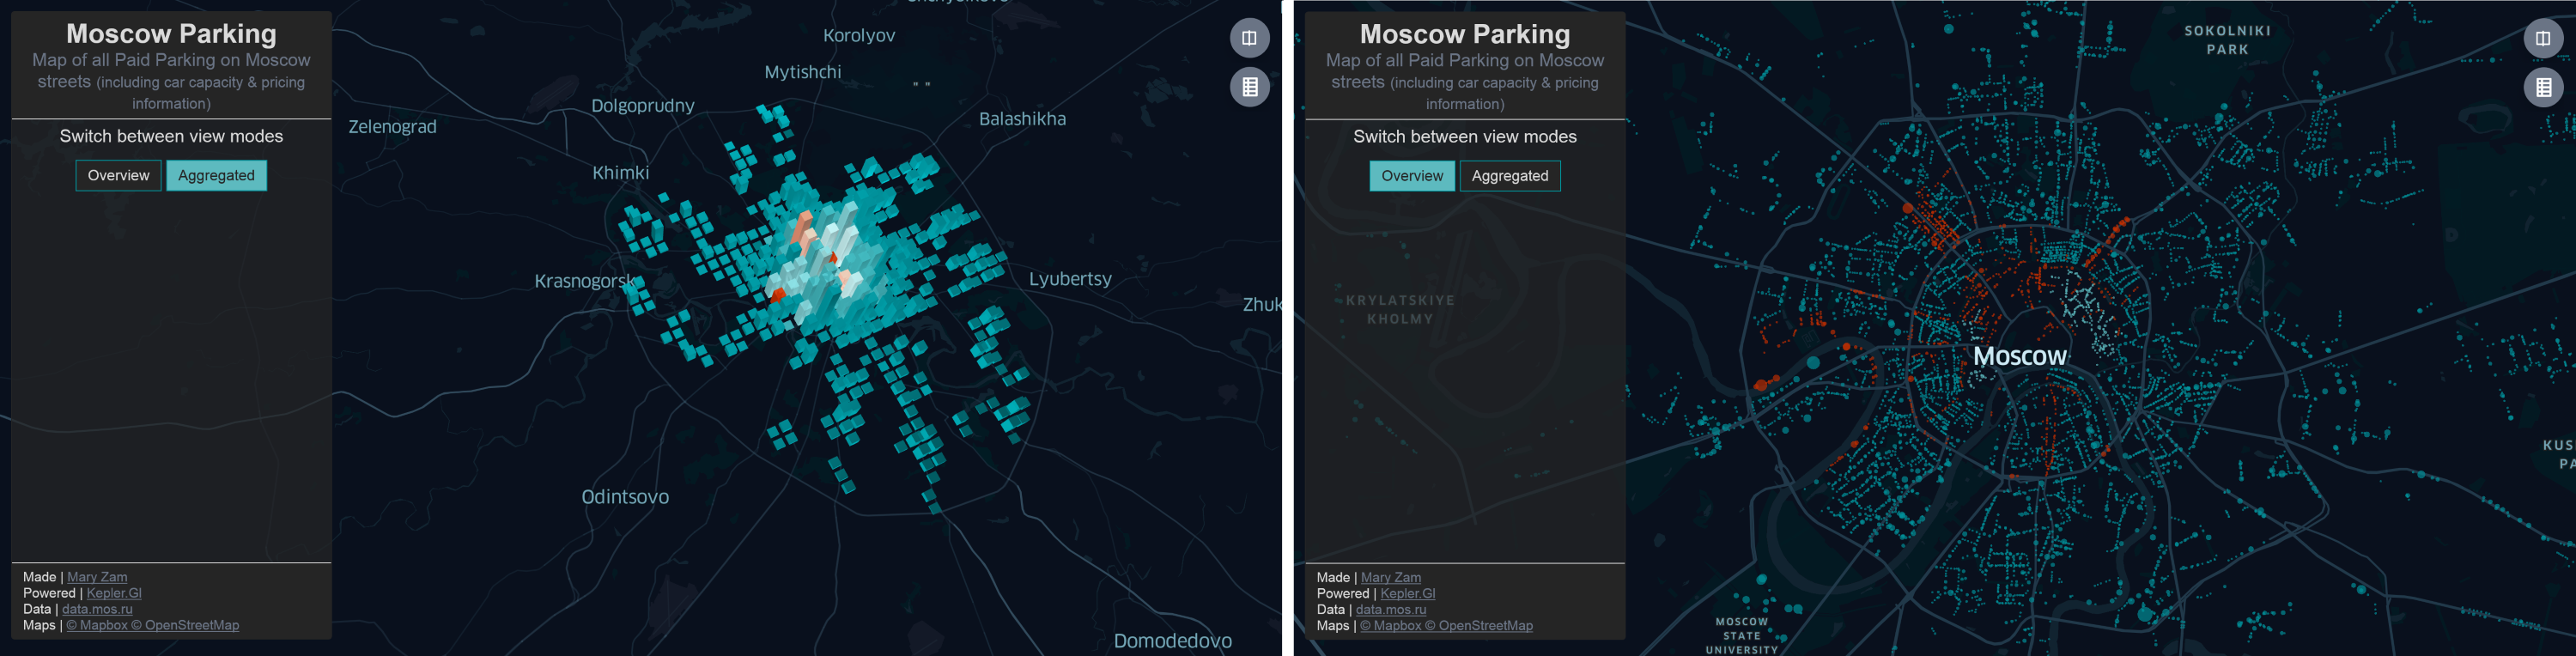 Demo app about paid parking in Moscow